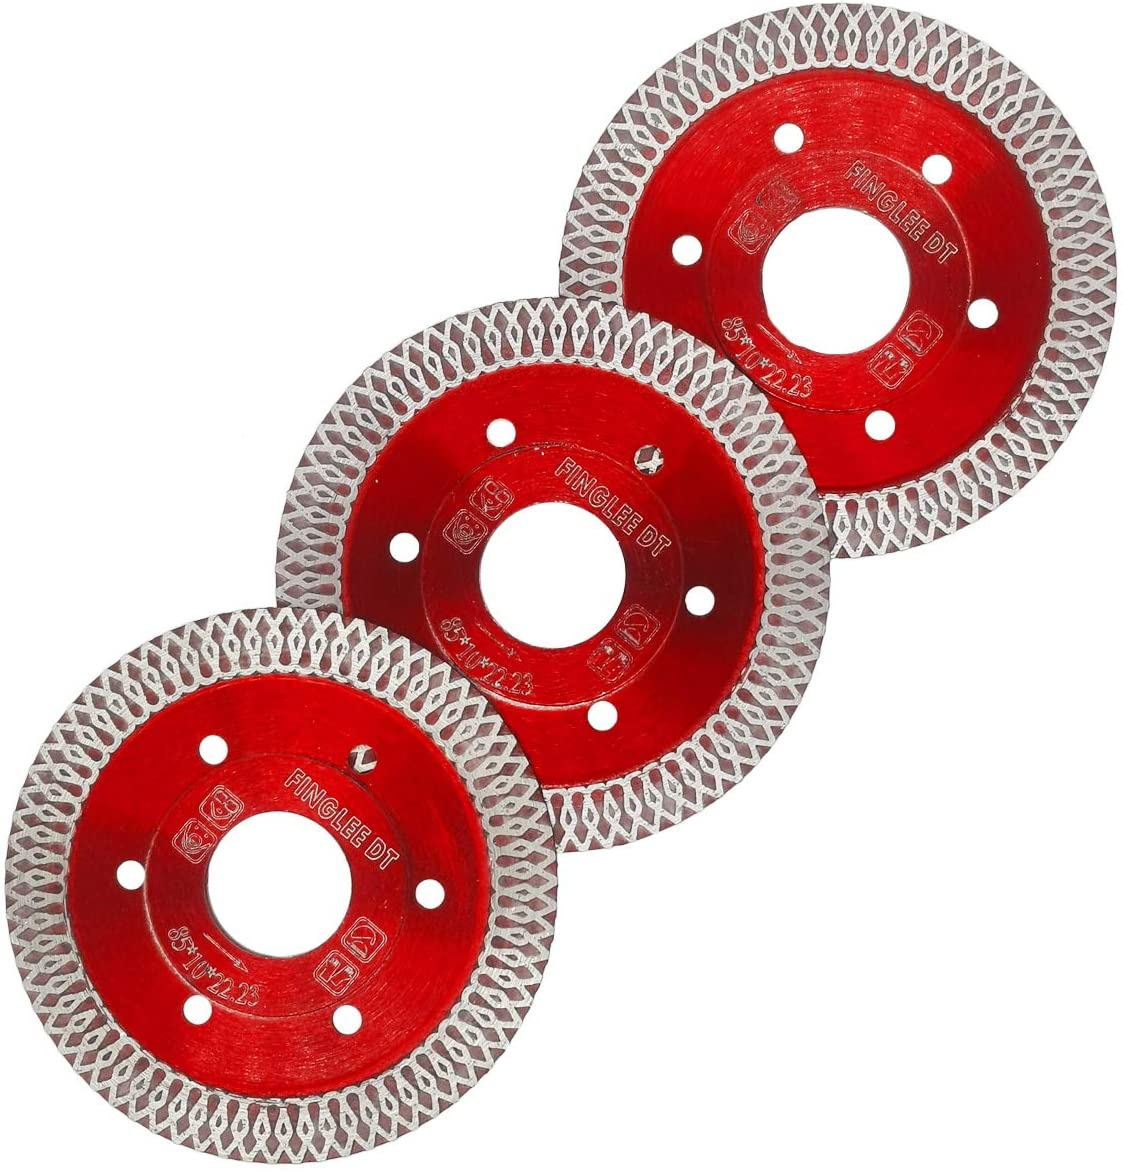 FINGLEE DT Super Thin Diamond Saw Blade for Porcelain Tile Ceramic,Diamond Cutting Blade,with 7/8